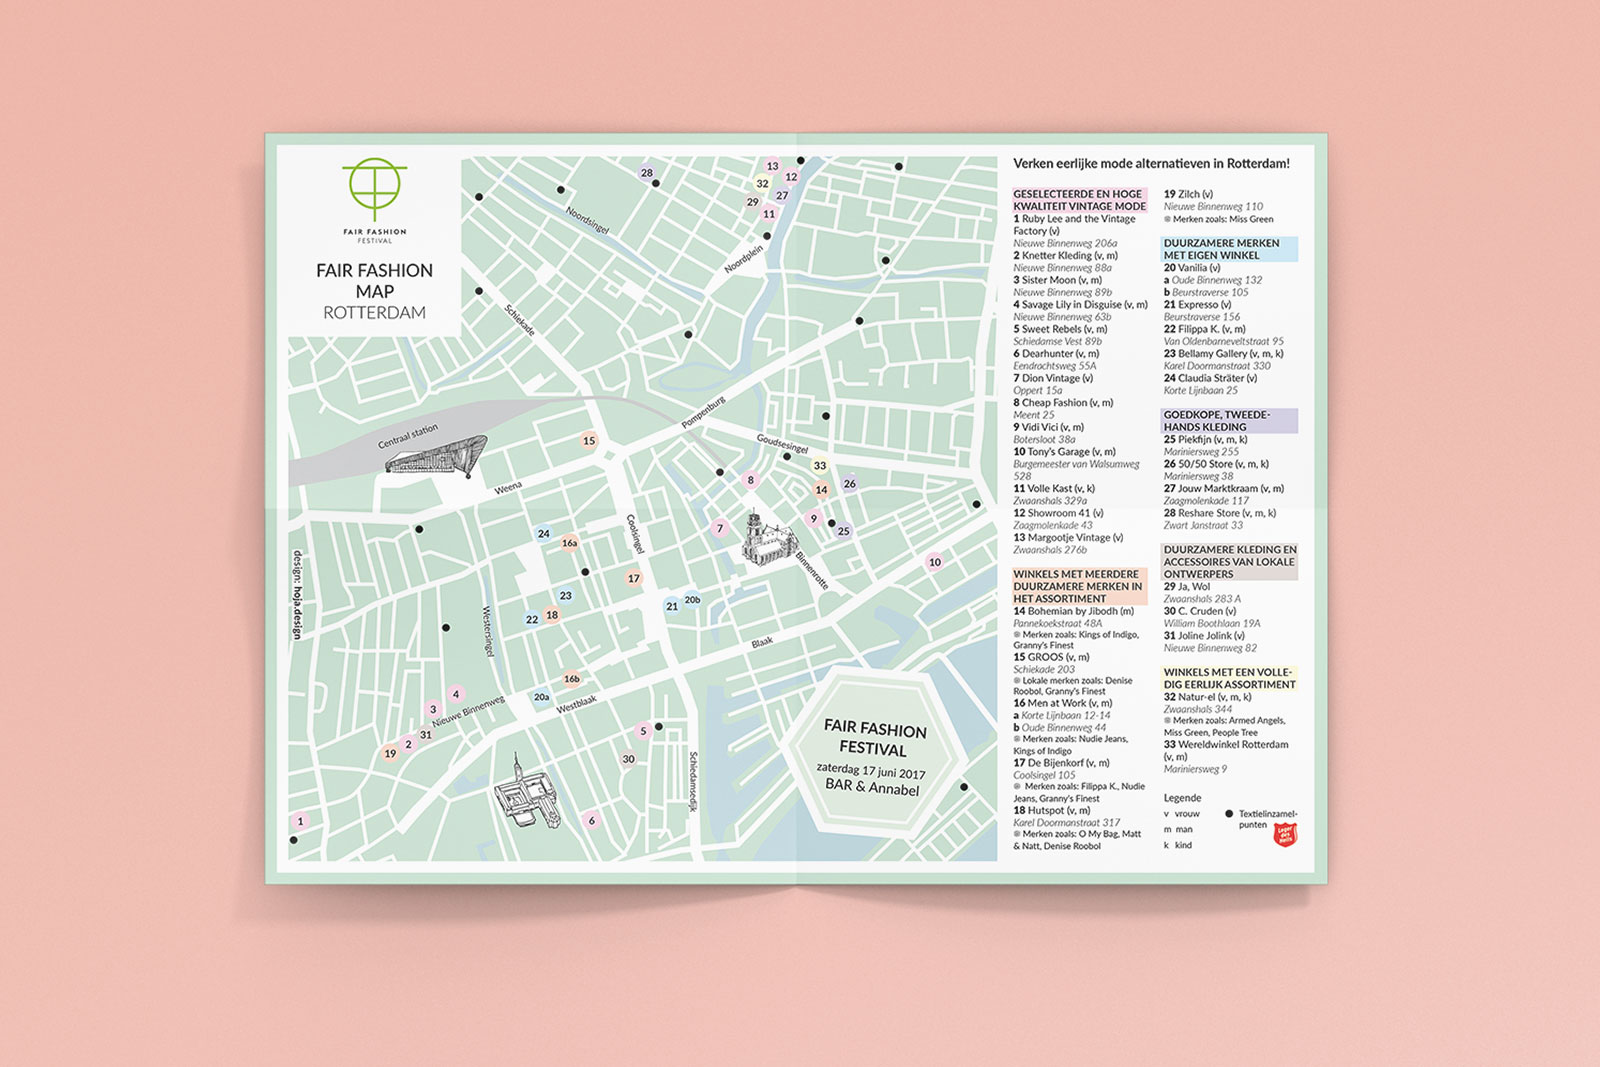 Fair Fashion Festival Rotterdam Map